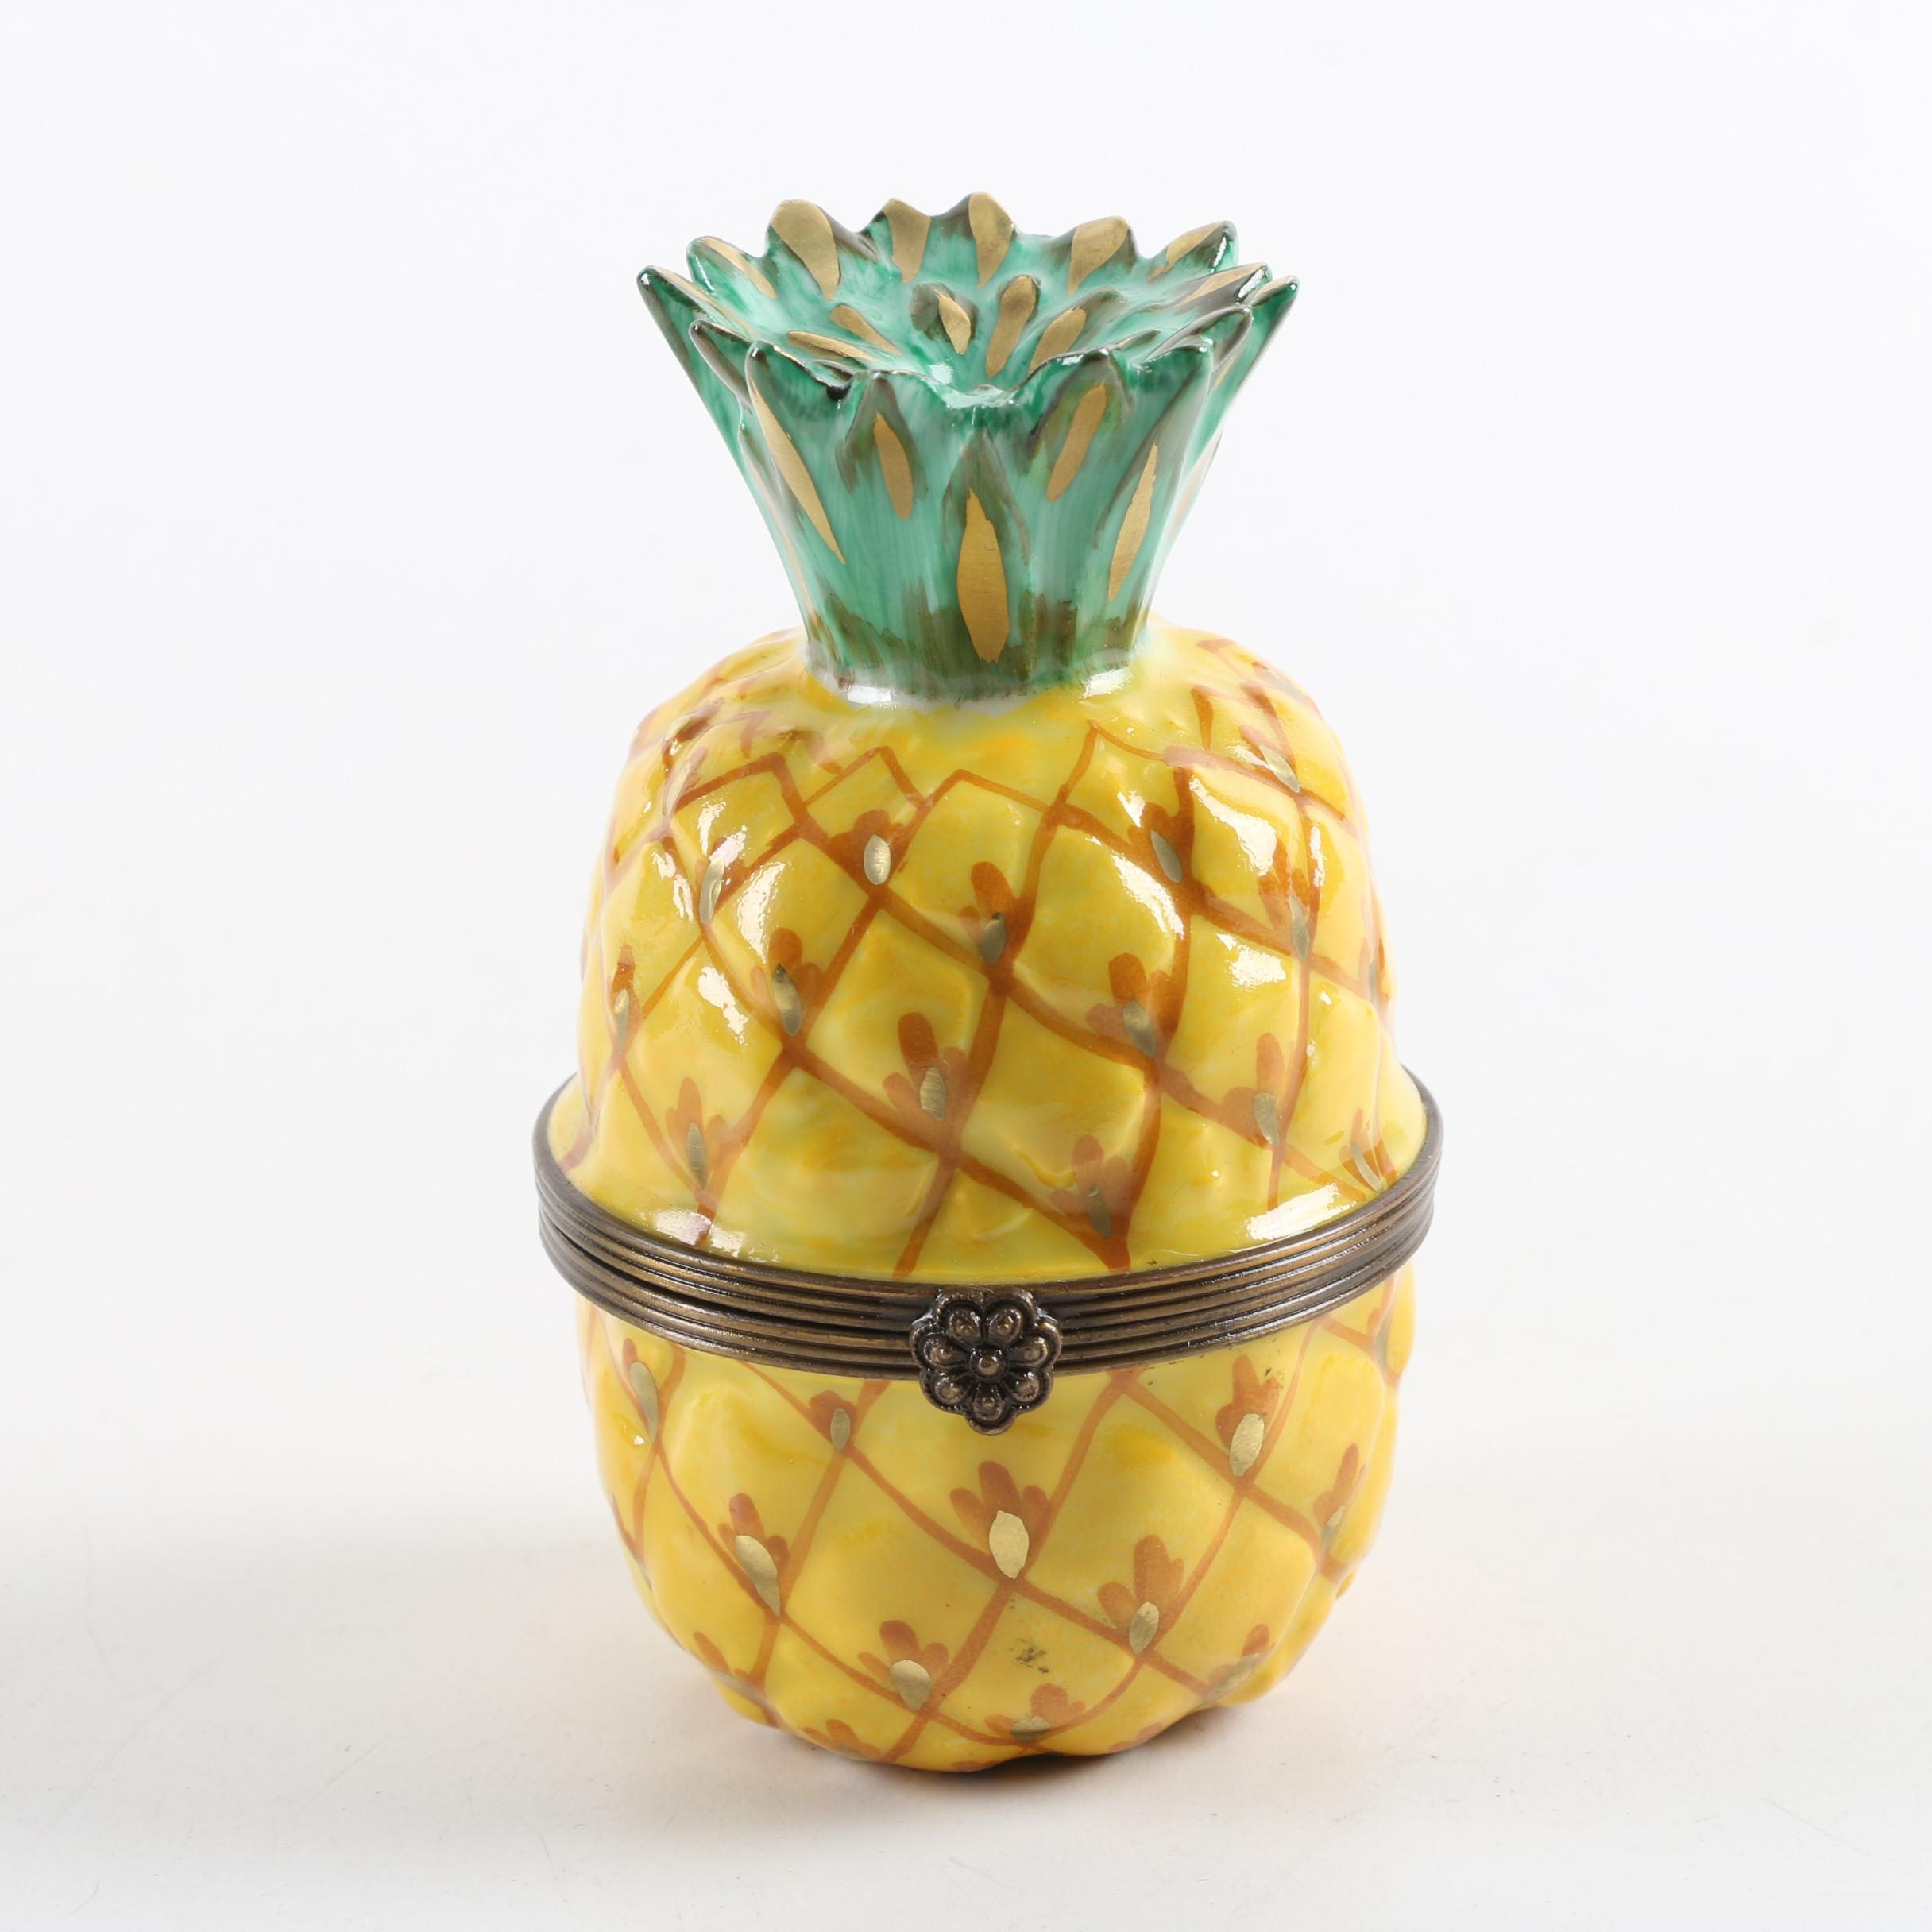 Tiffany & Co. Limoges Hand Painted Pineapple Trinket Box